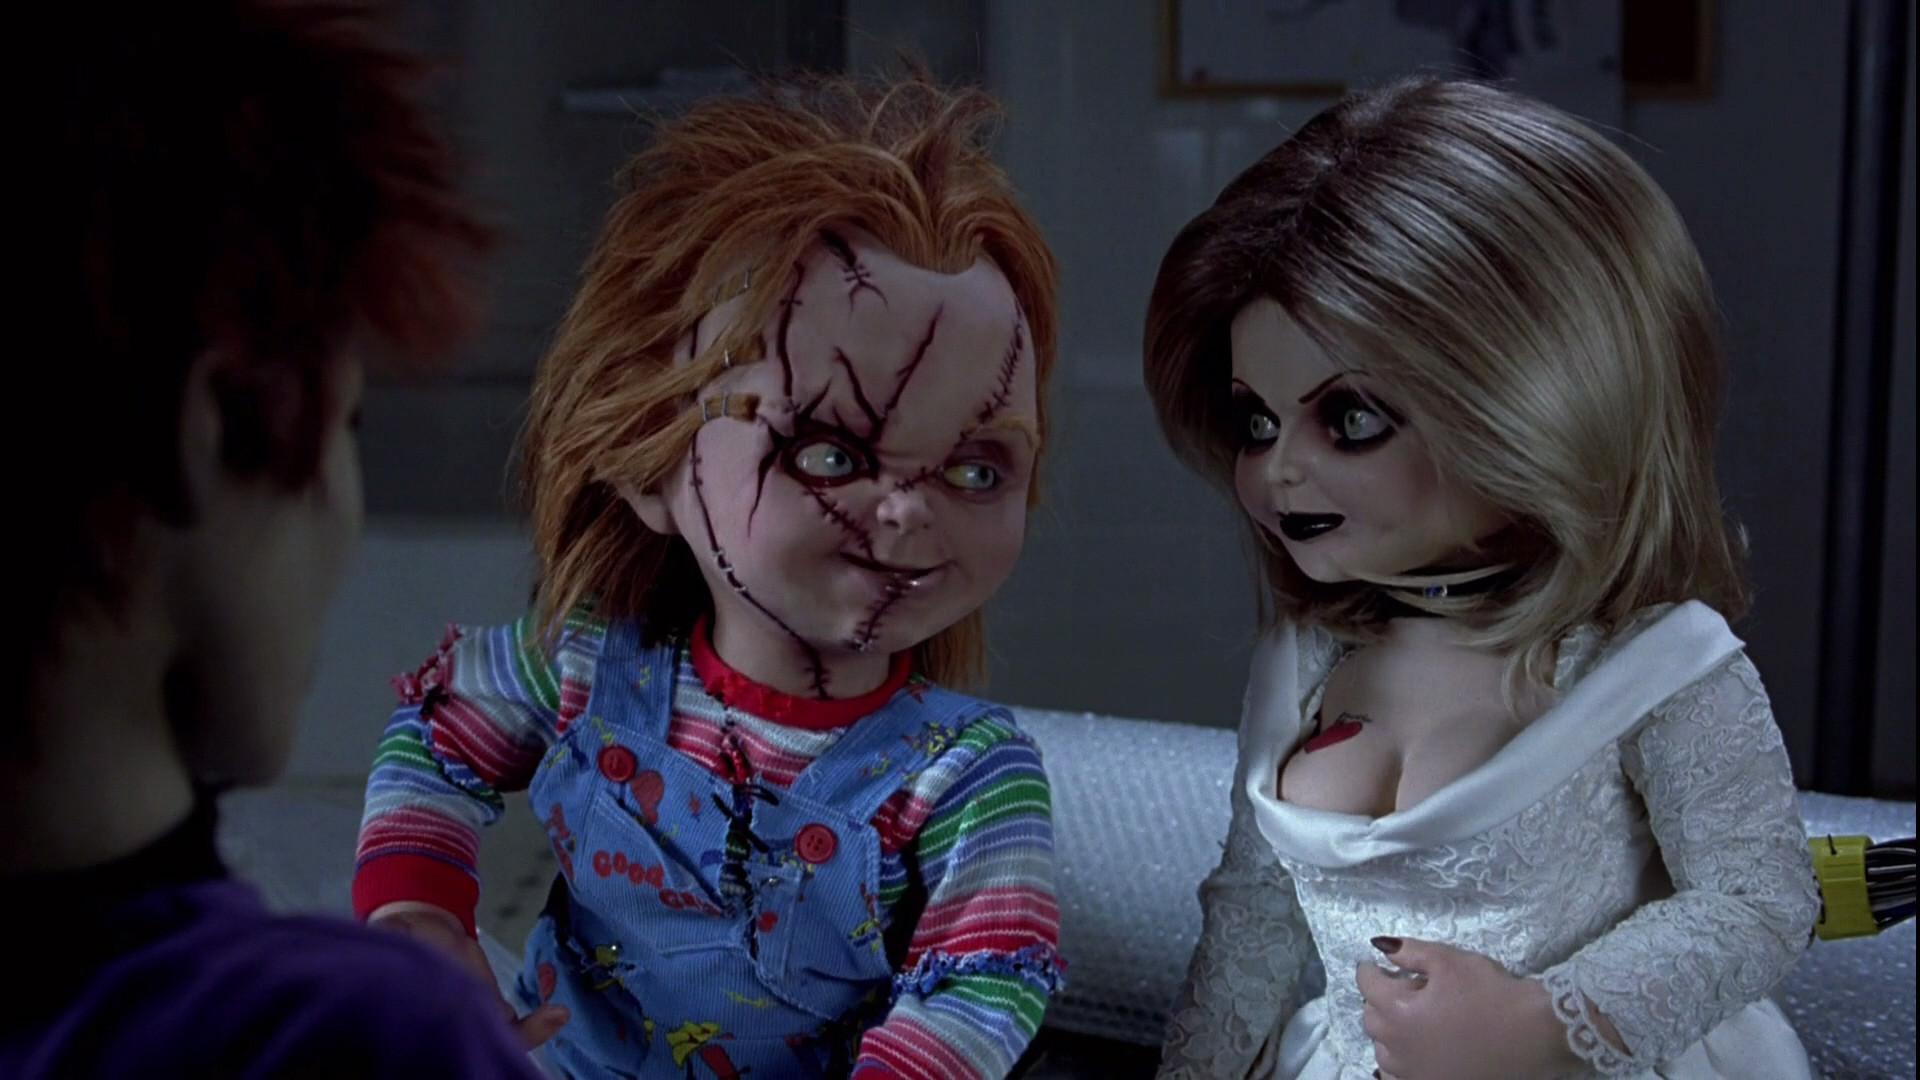 Pin Pin Chucky An Tiffany Childs Play Wallpaper 25673277 Fanpop On on .